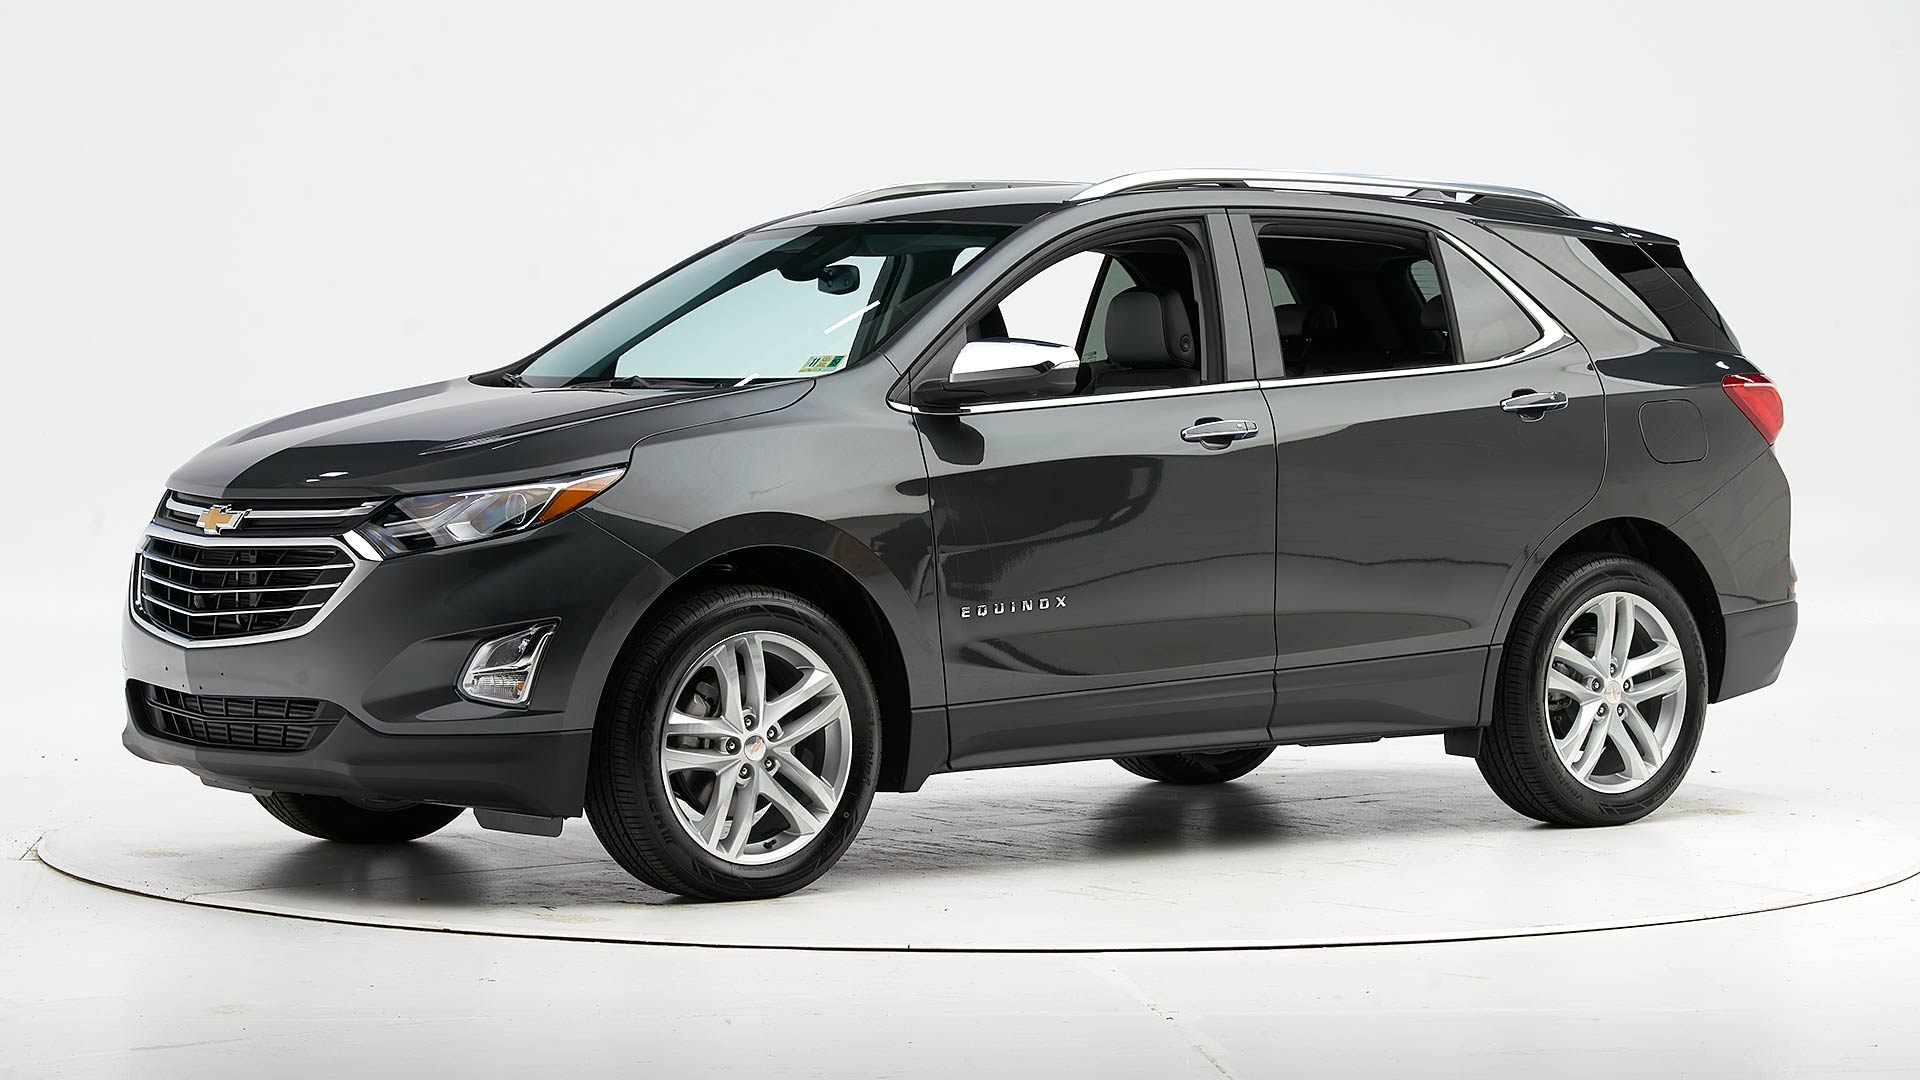 2019 Chevrolet Equinox 4-door SUV